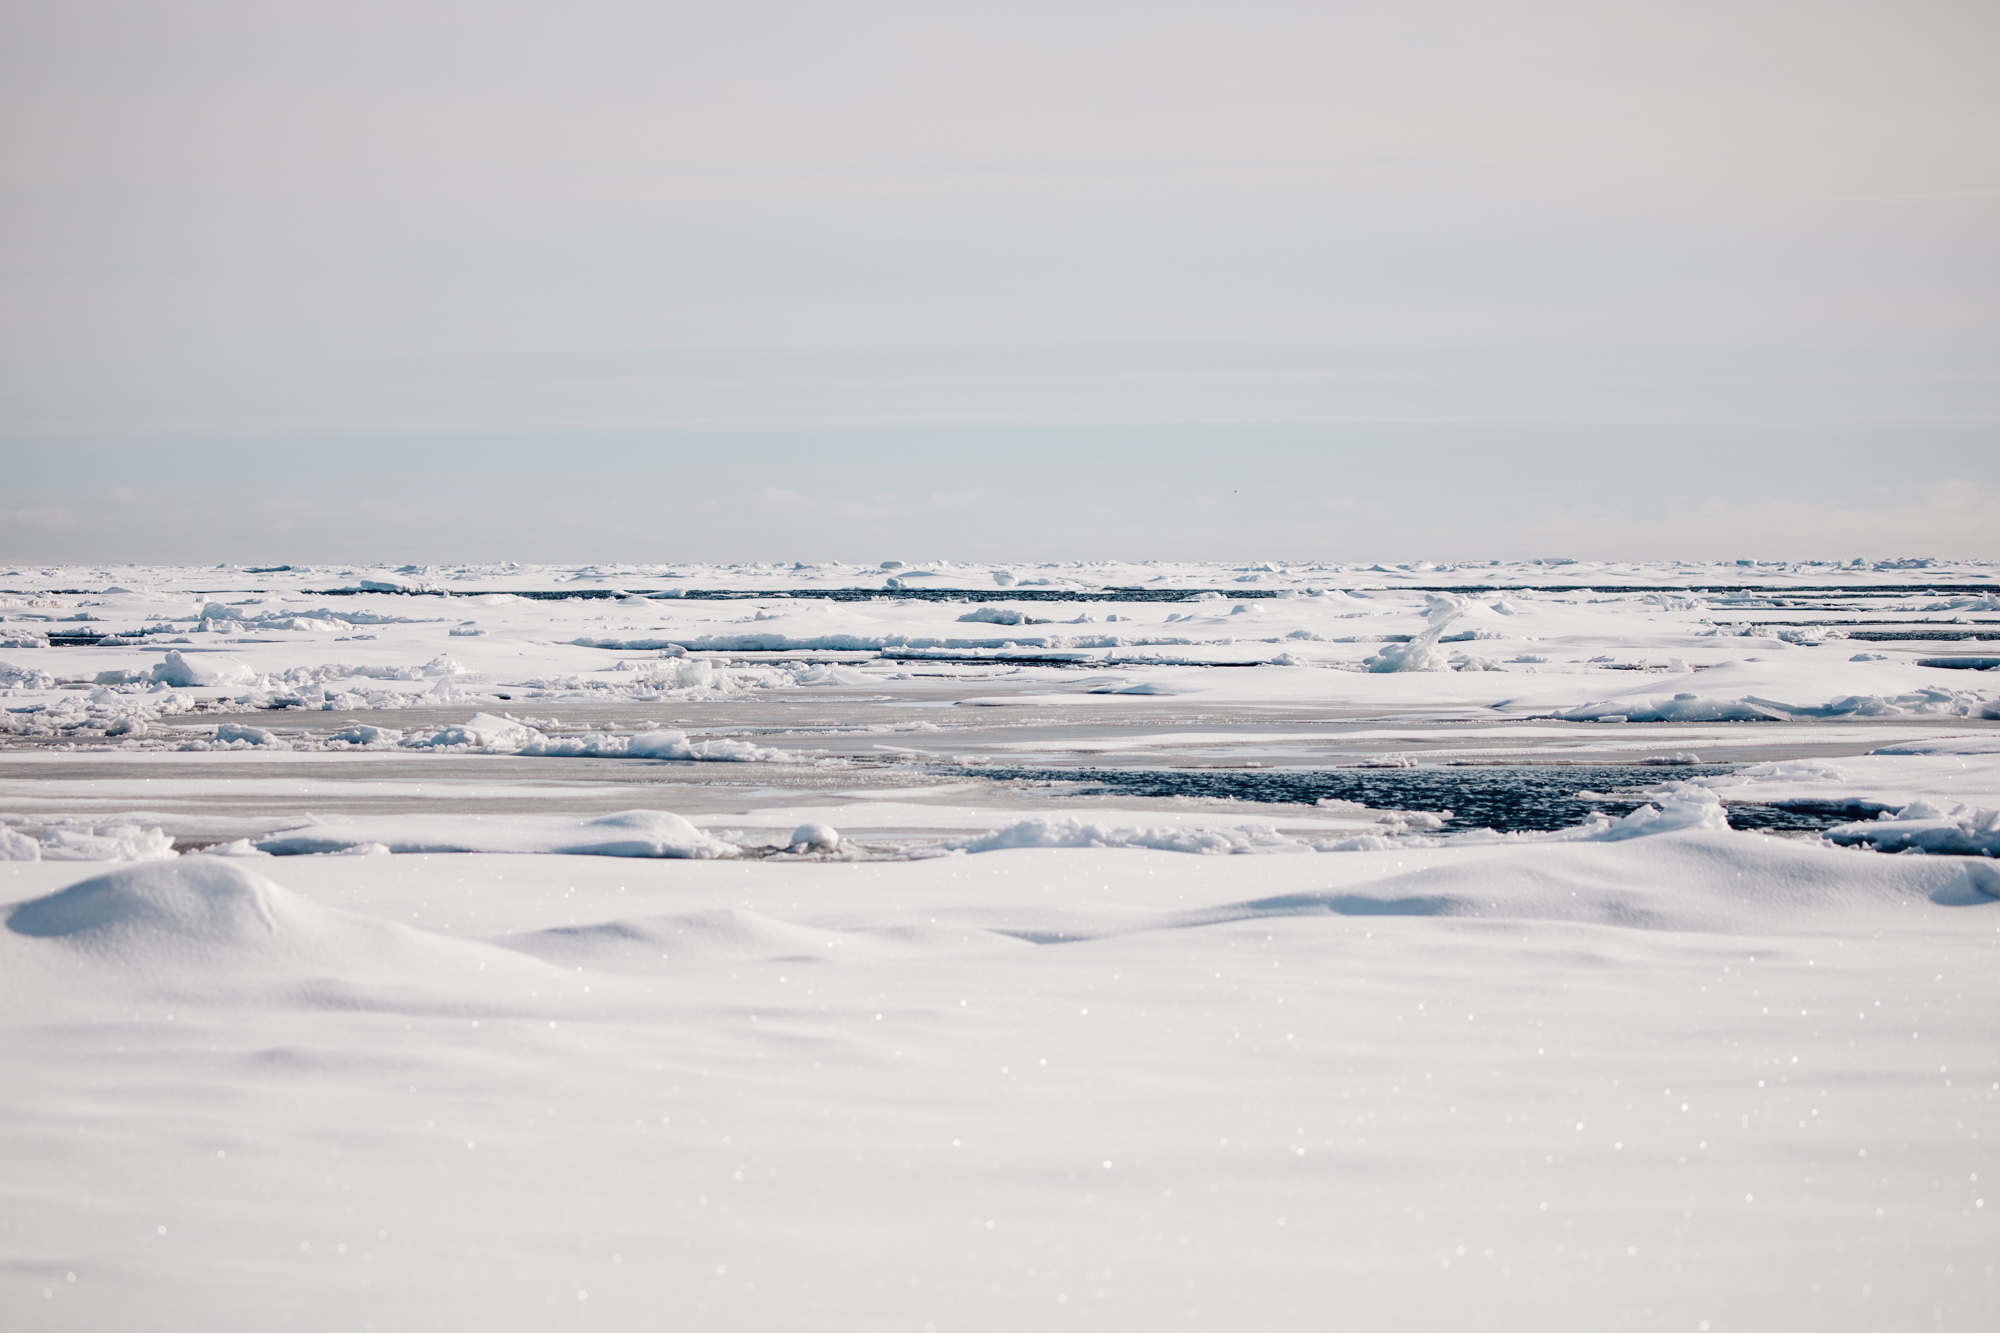 On an ice float in the arctic ocean of Svalbard via Find Us Lost